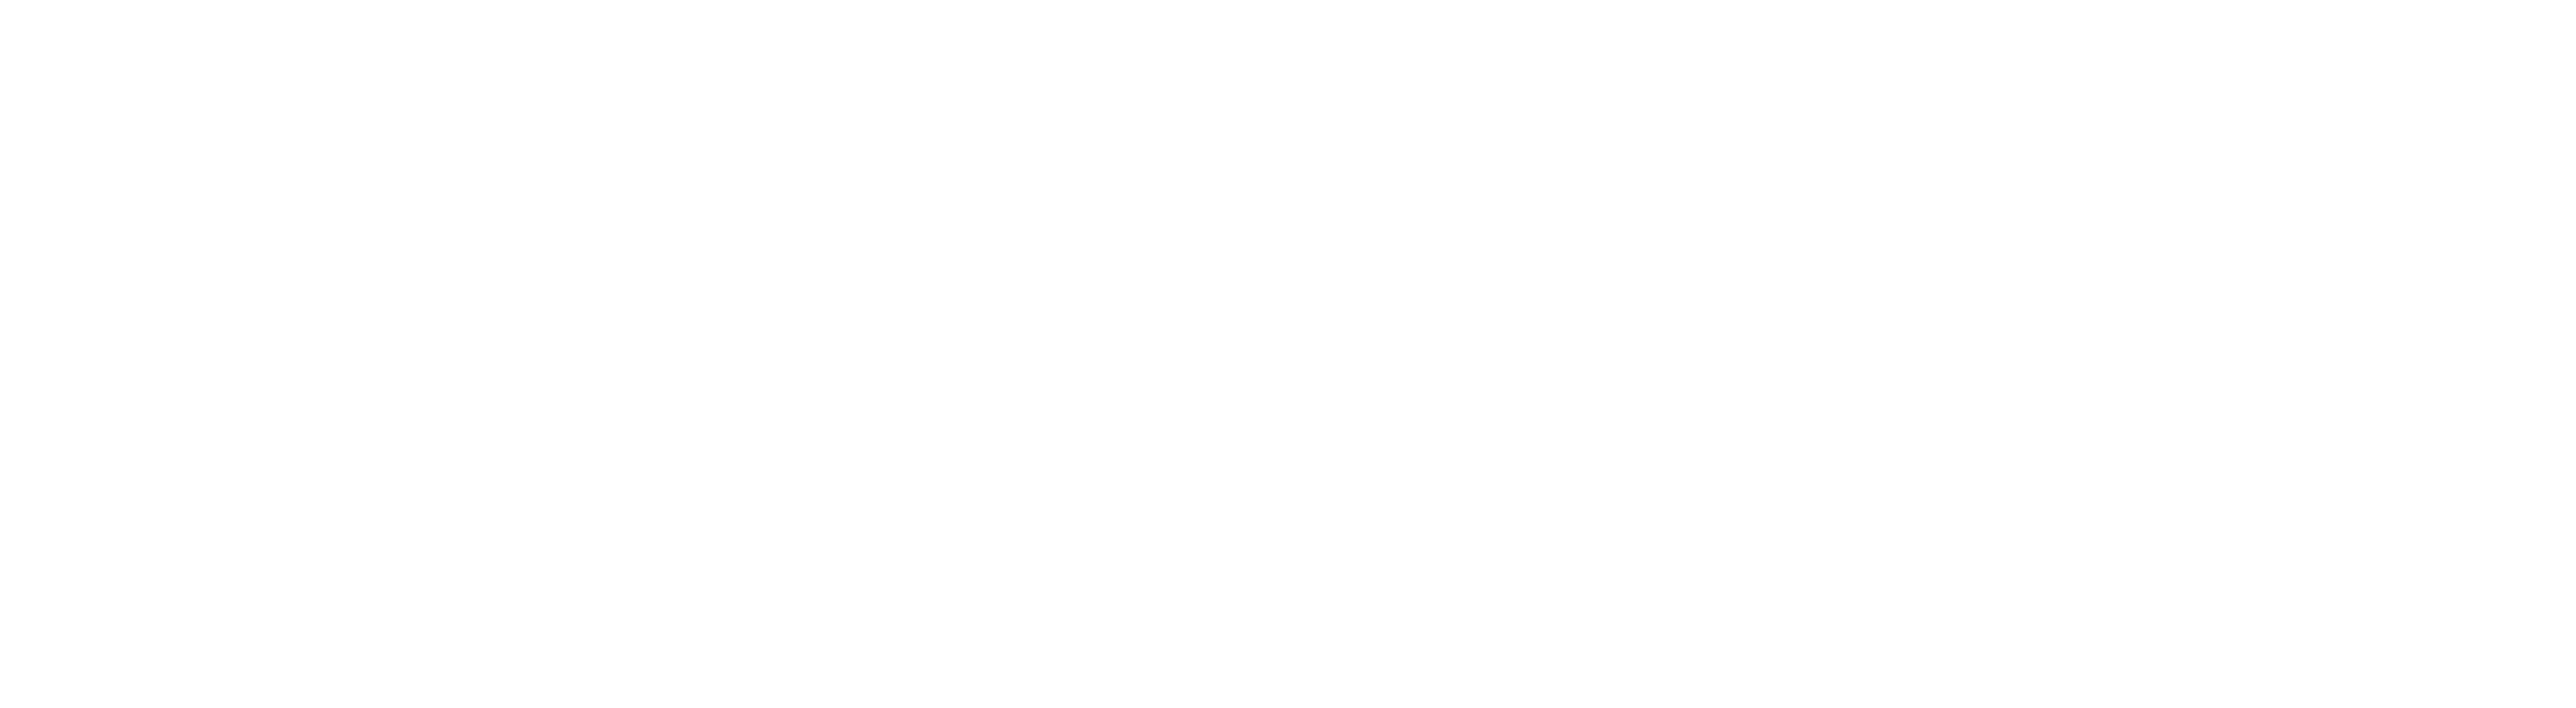 Kinship Chocolate